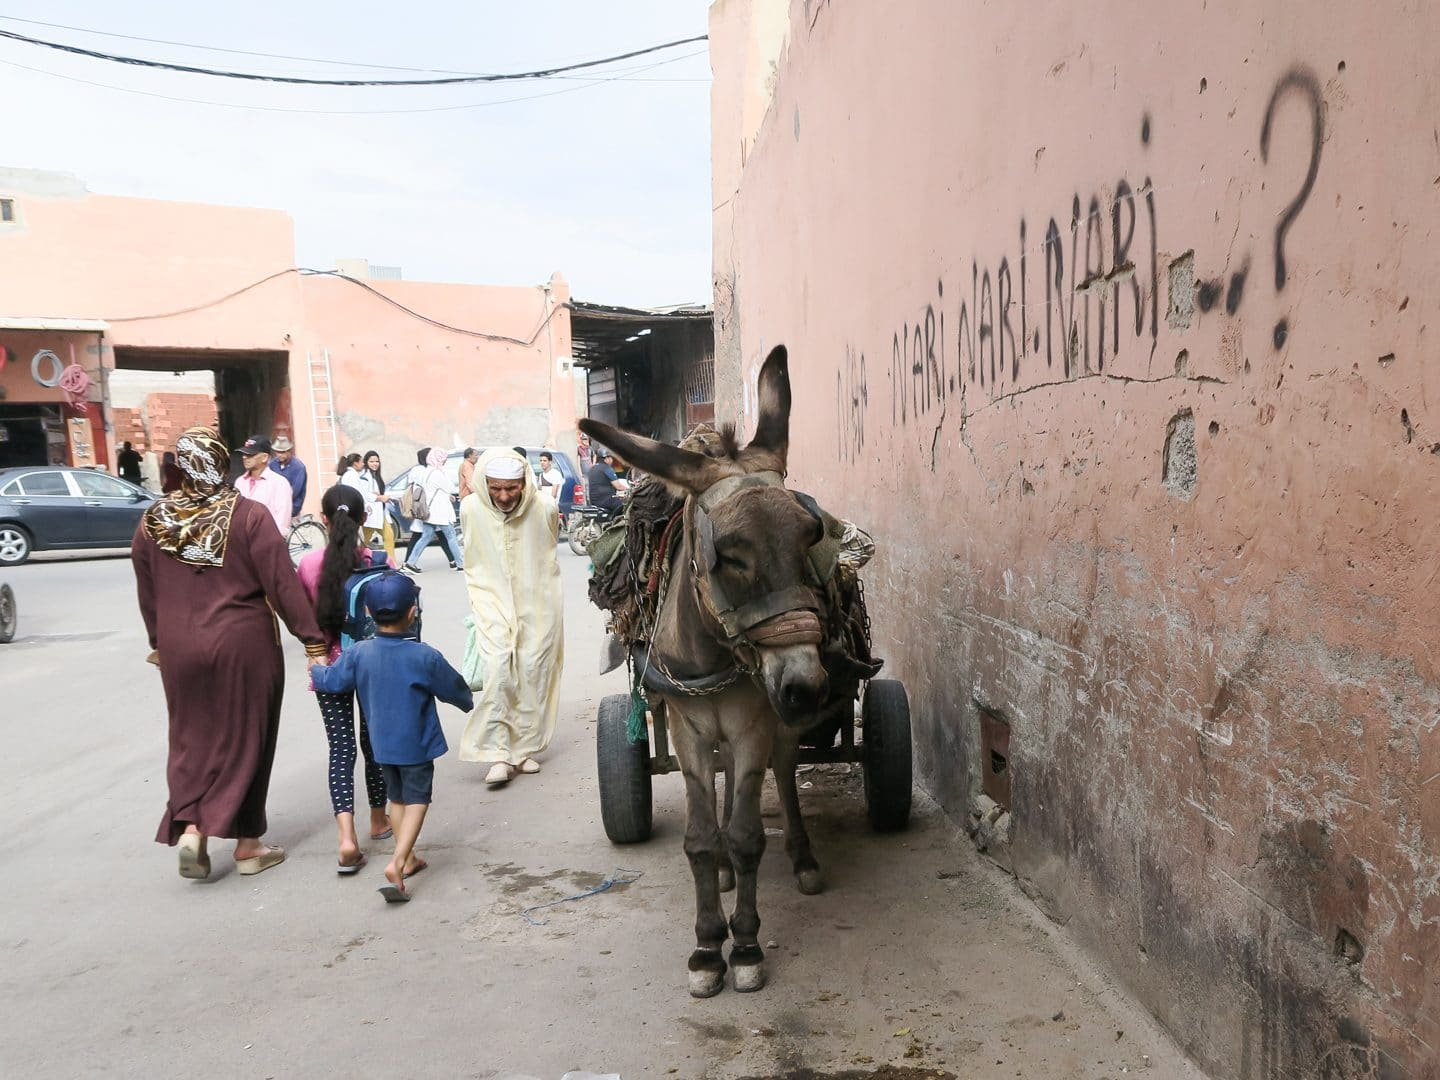 Donkey in Marrakech, Morocco | Curiously Conscious